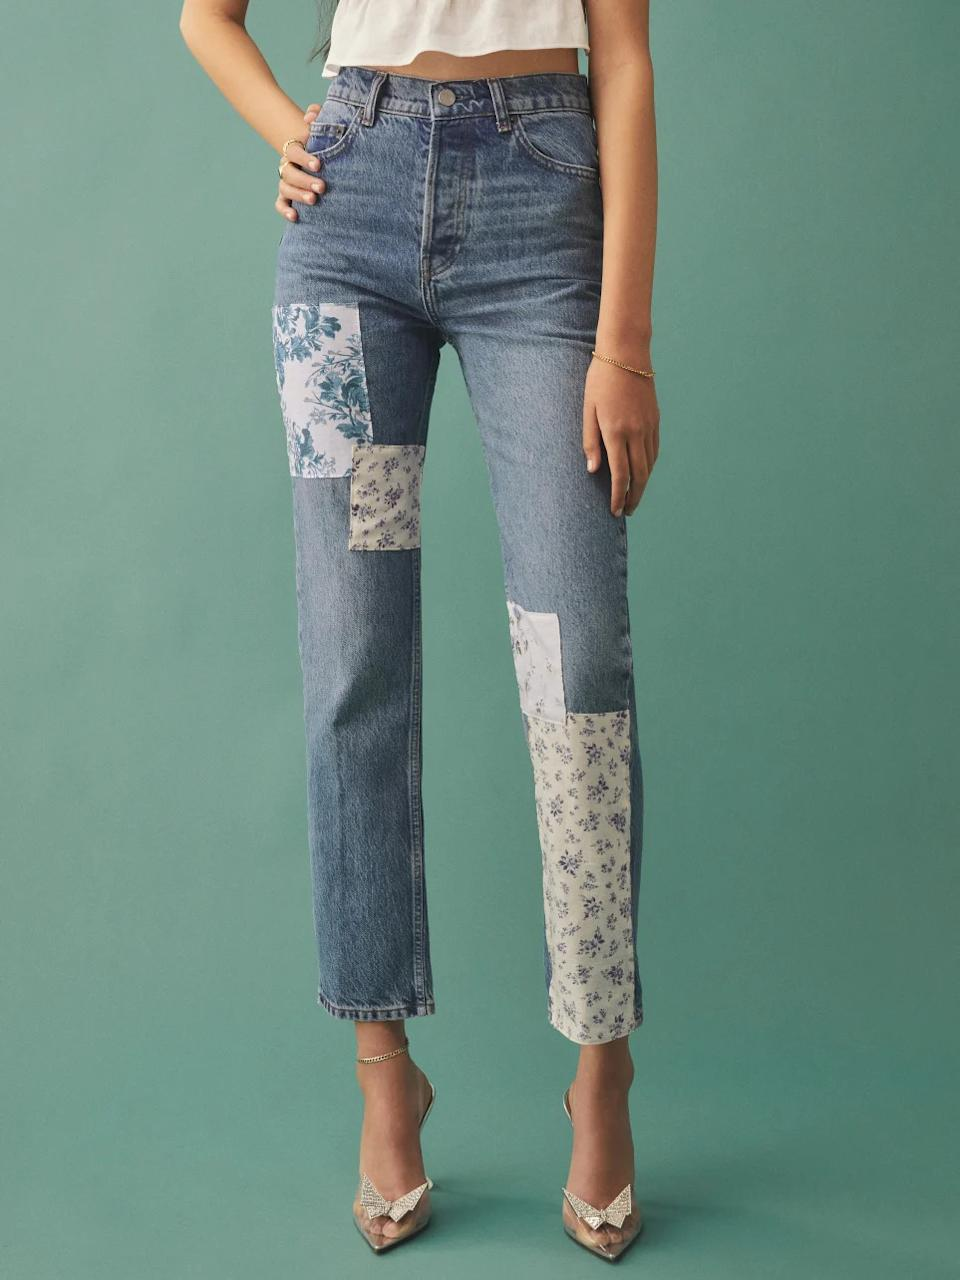 Cynthia Linen Patch High Rise Straight Jeans. Image via Reformation.